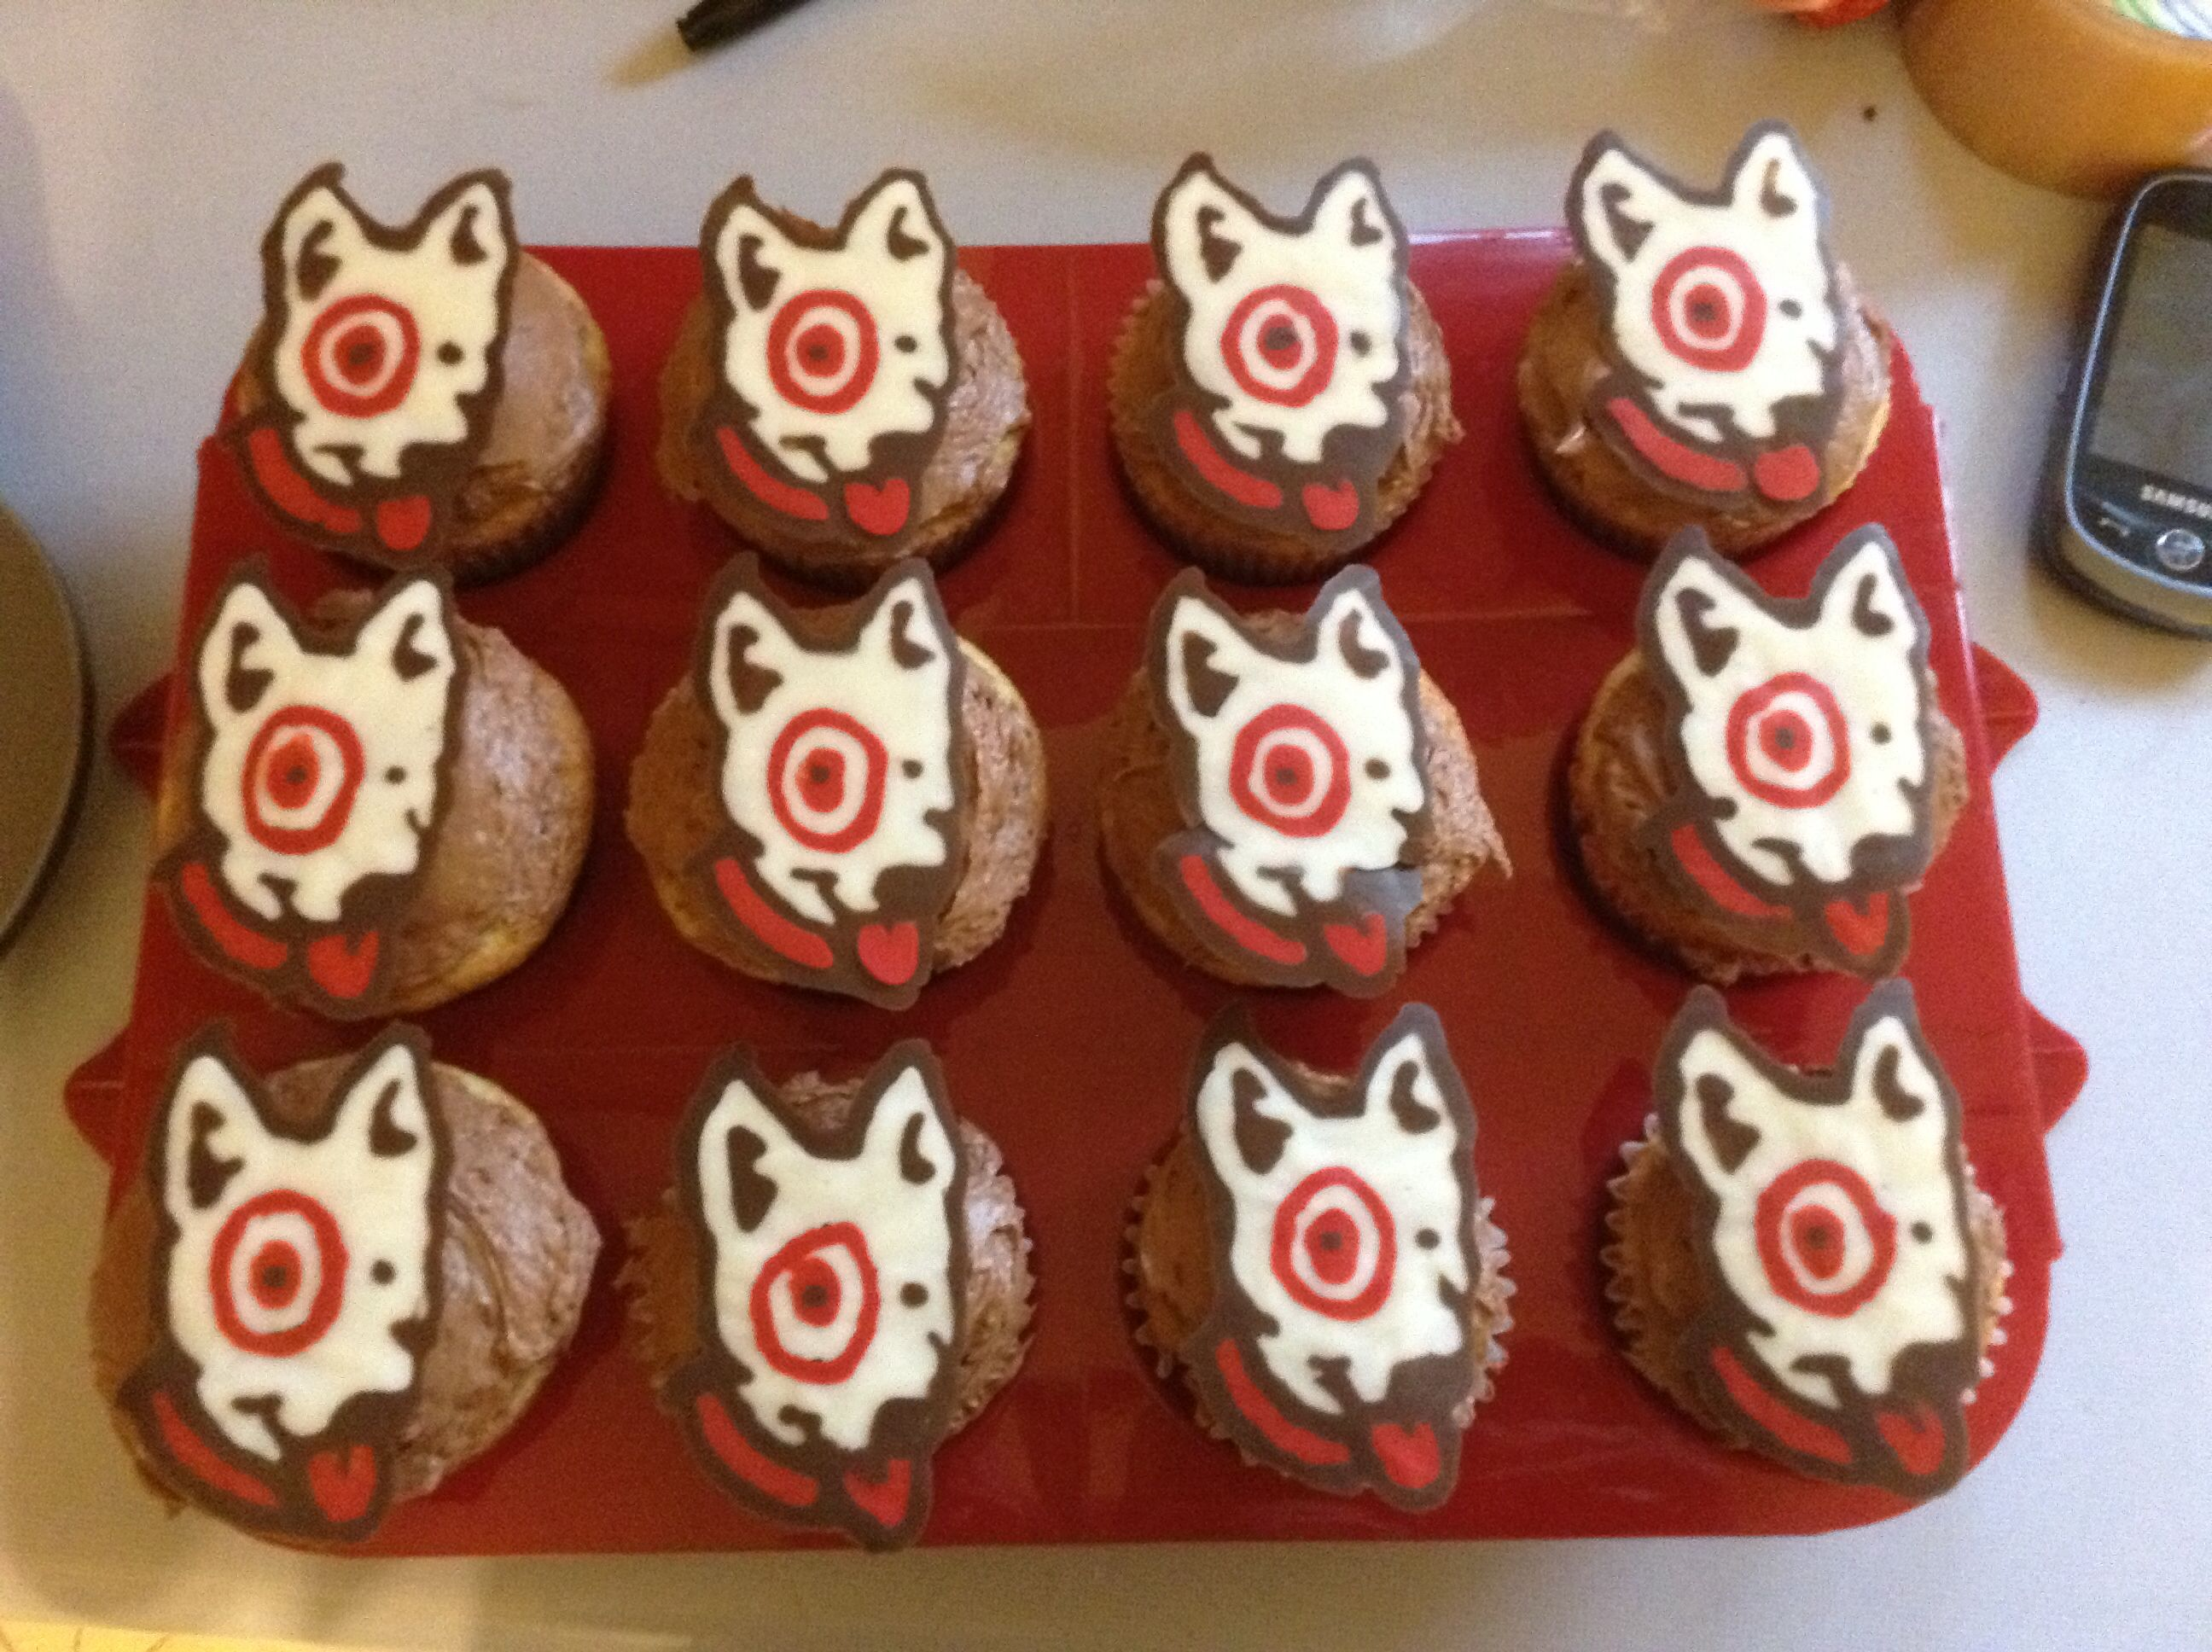 Bullseye The Target Dog Cool Cupcakes If You Work At